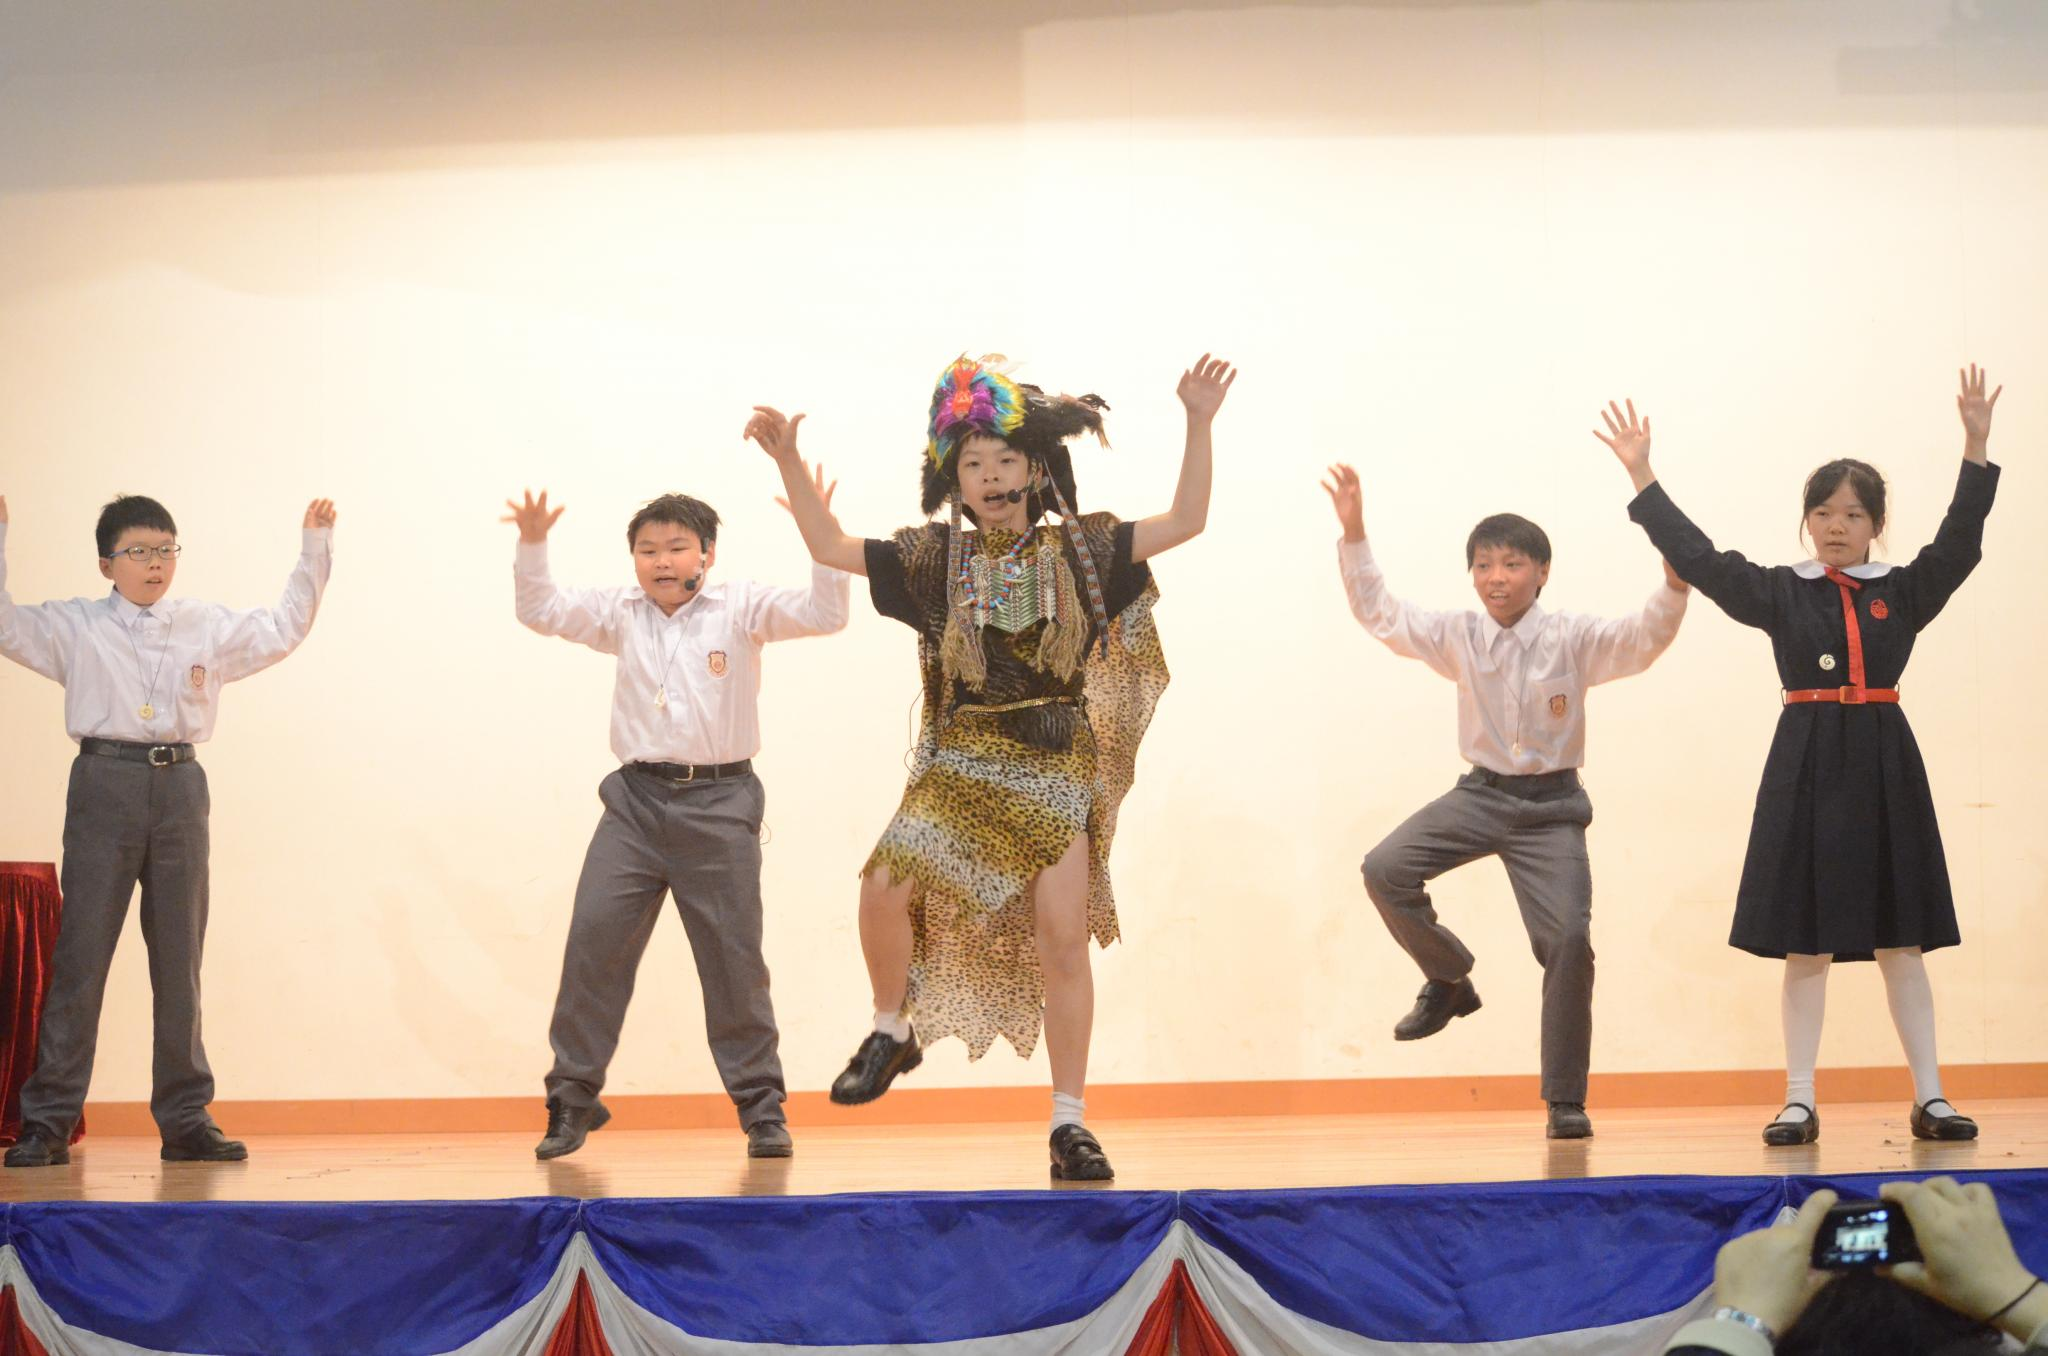 Brilliant performances from the students of the New Zealand Study Tour.